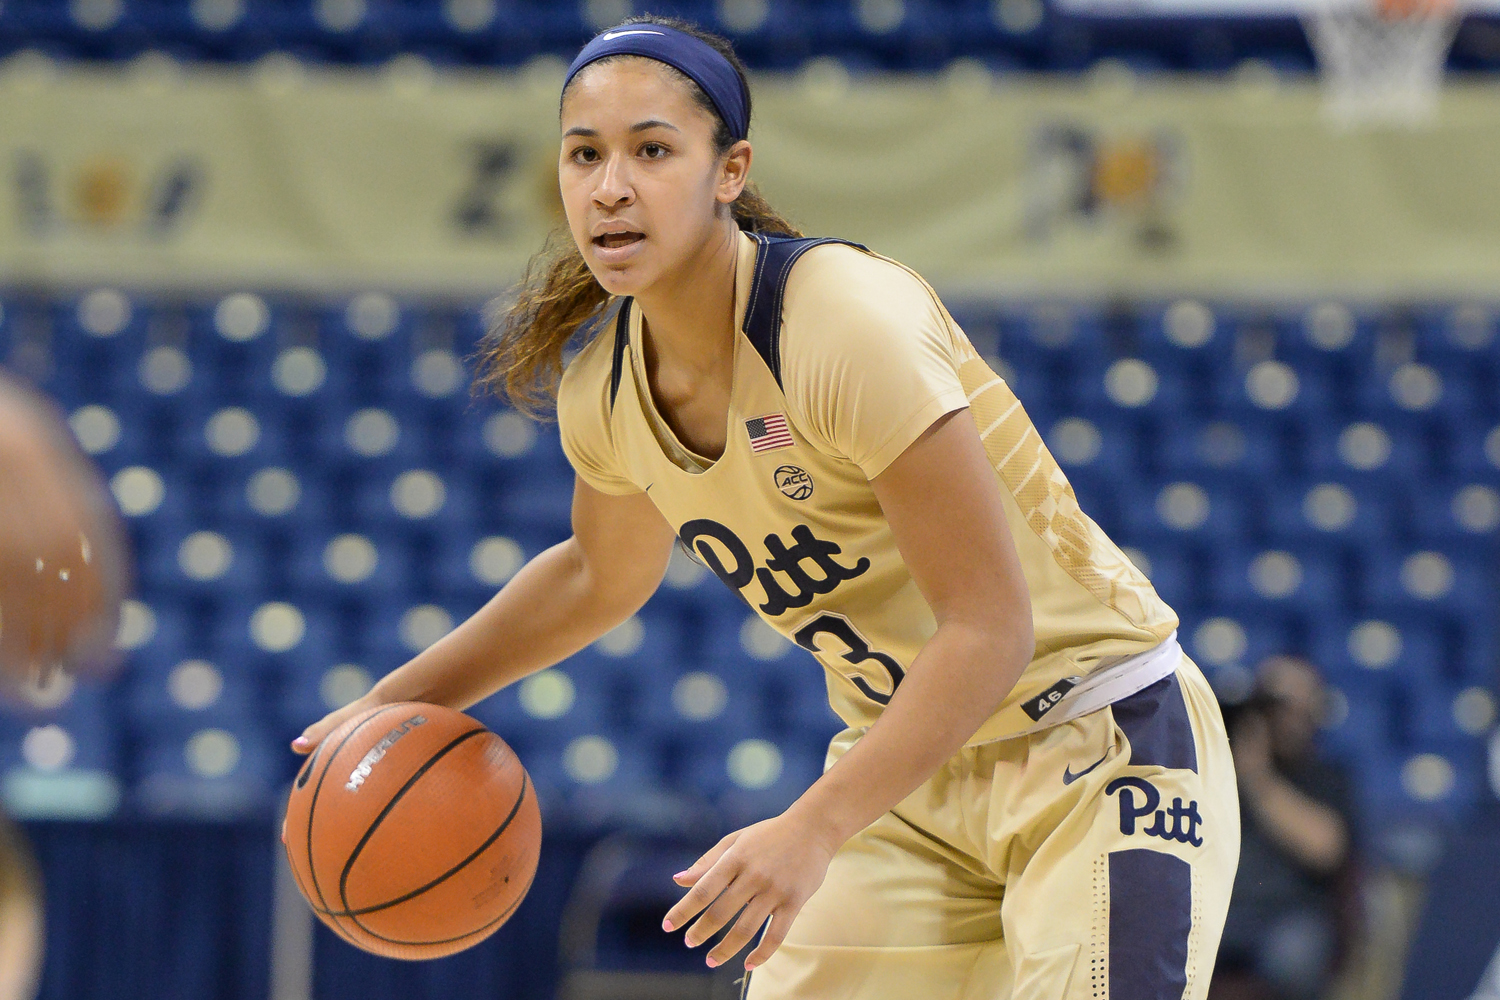 Junior guard Jasmine Whitney (3) contributed 13 points to Pitt's 68-46 victory over Gannon.